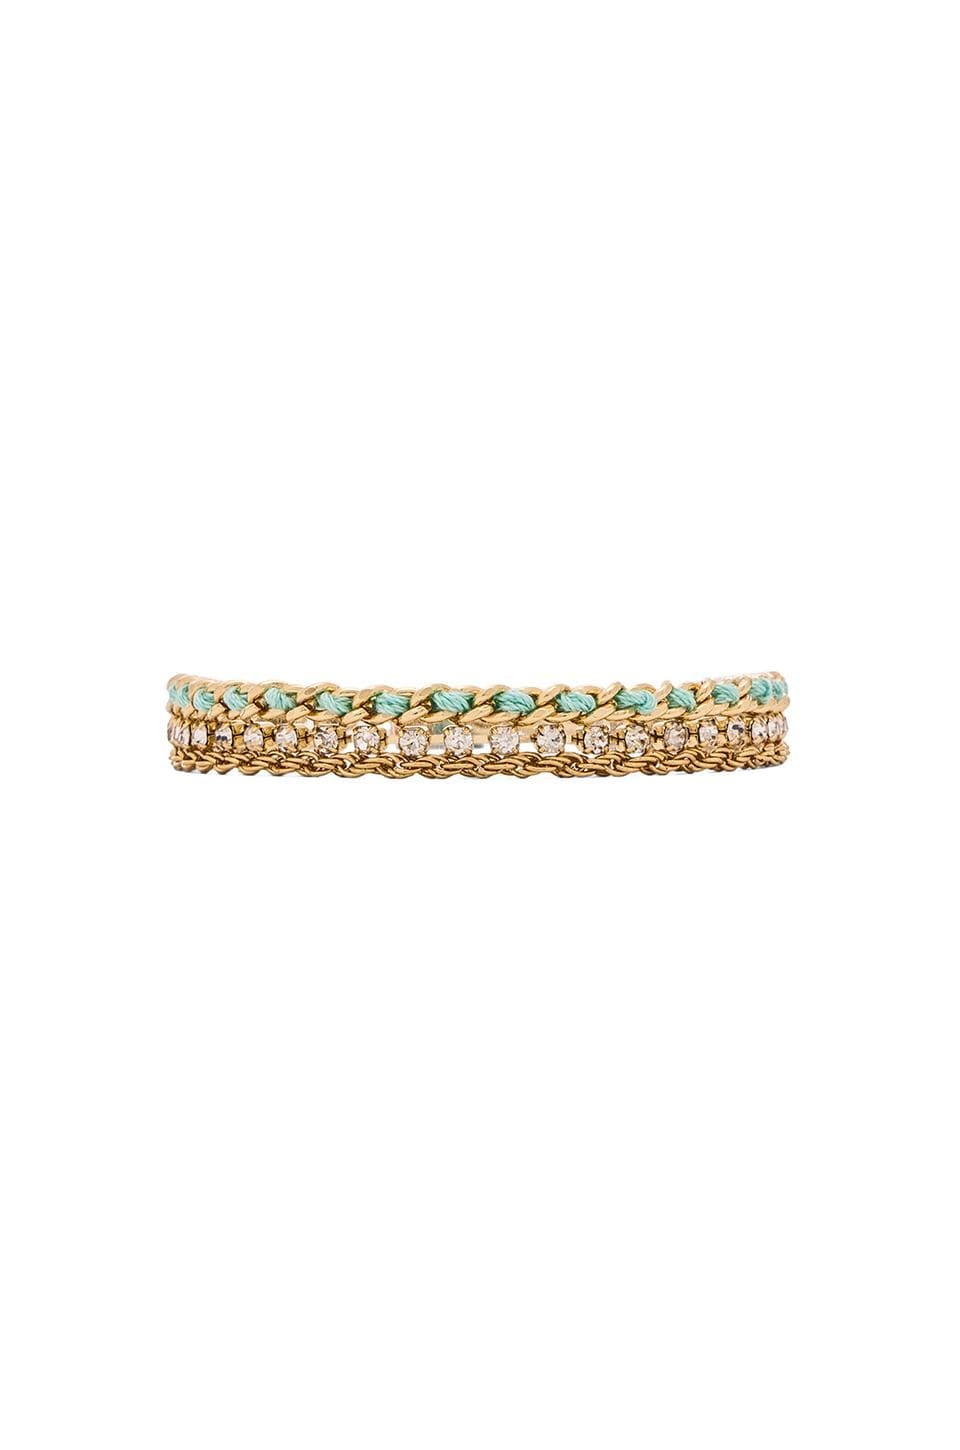 Ettika 3 Chain Bracelet in Gold & Mint